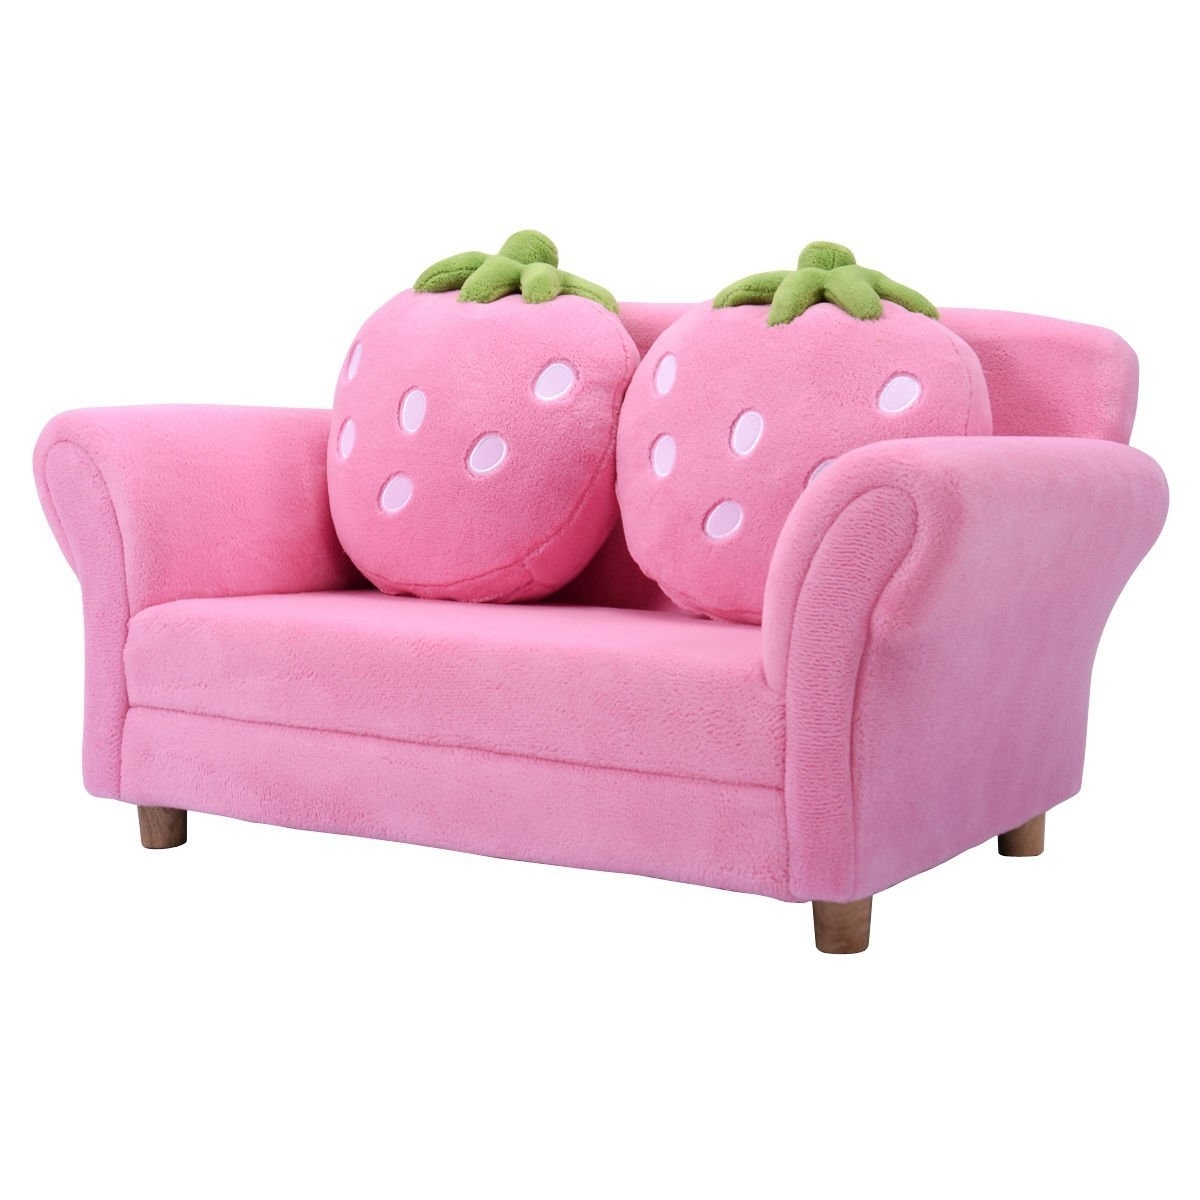 Amazon: New Pink Kids Sofa Strawberry Armrest Chair Lounge Intended For Most Popular Cheap Kids Sofas (View 2 of 15)